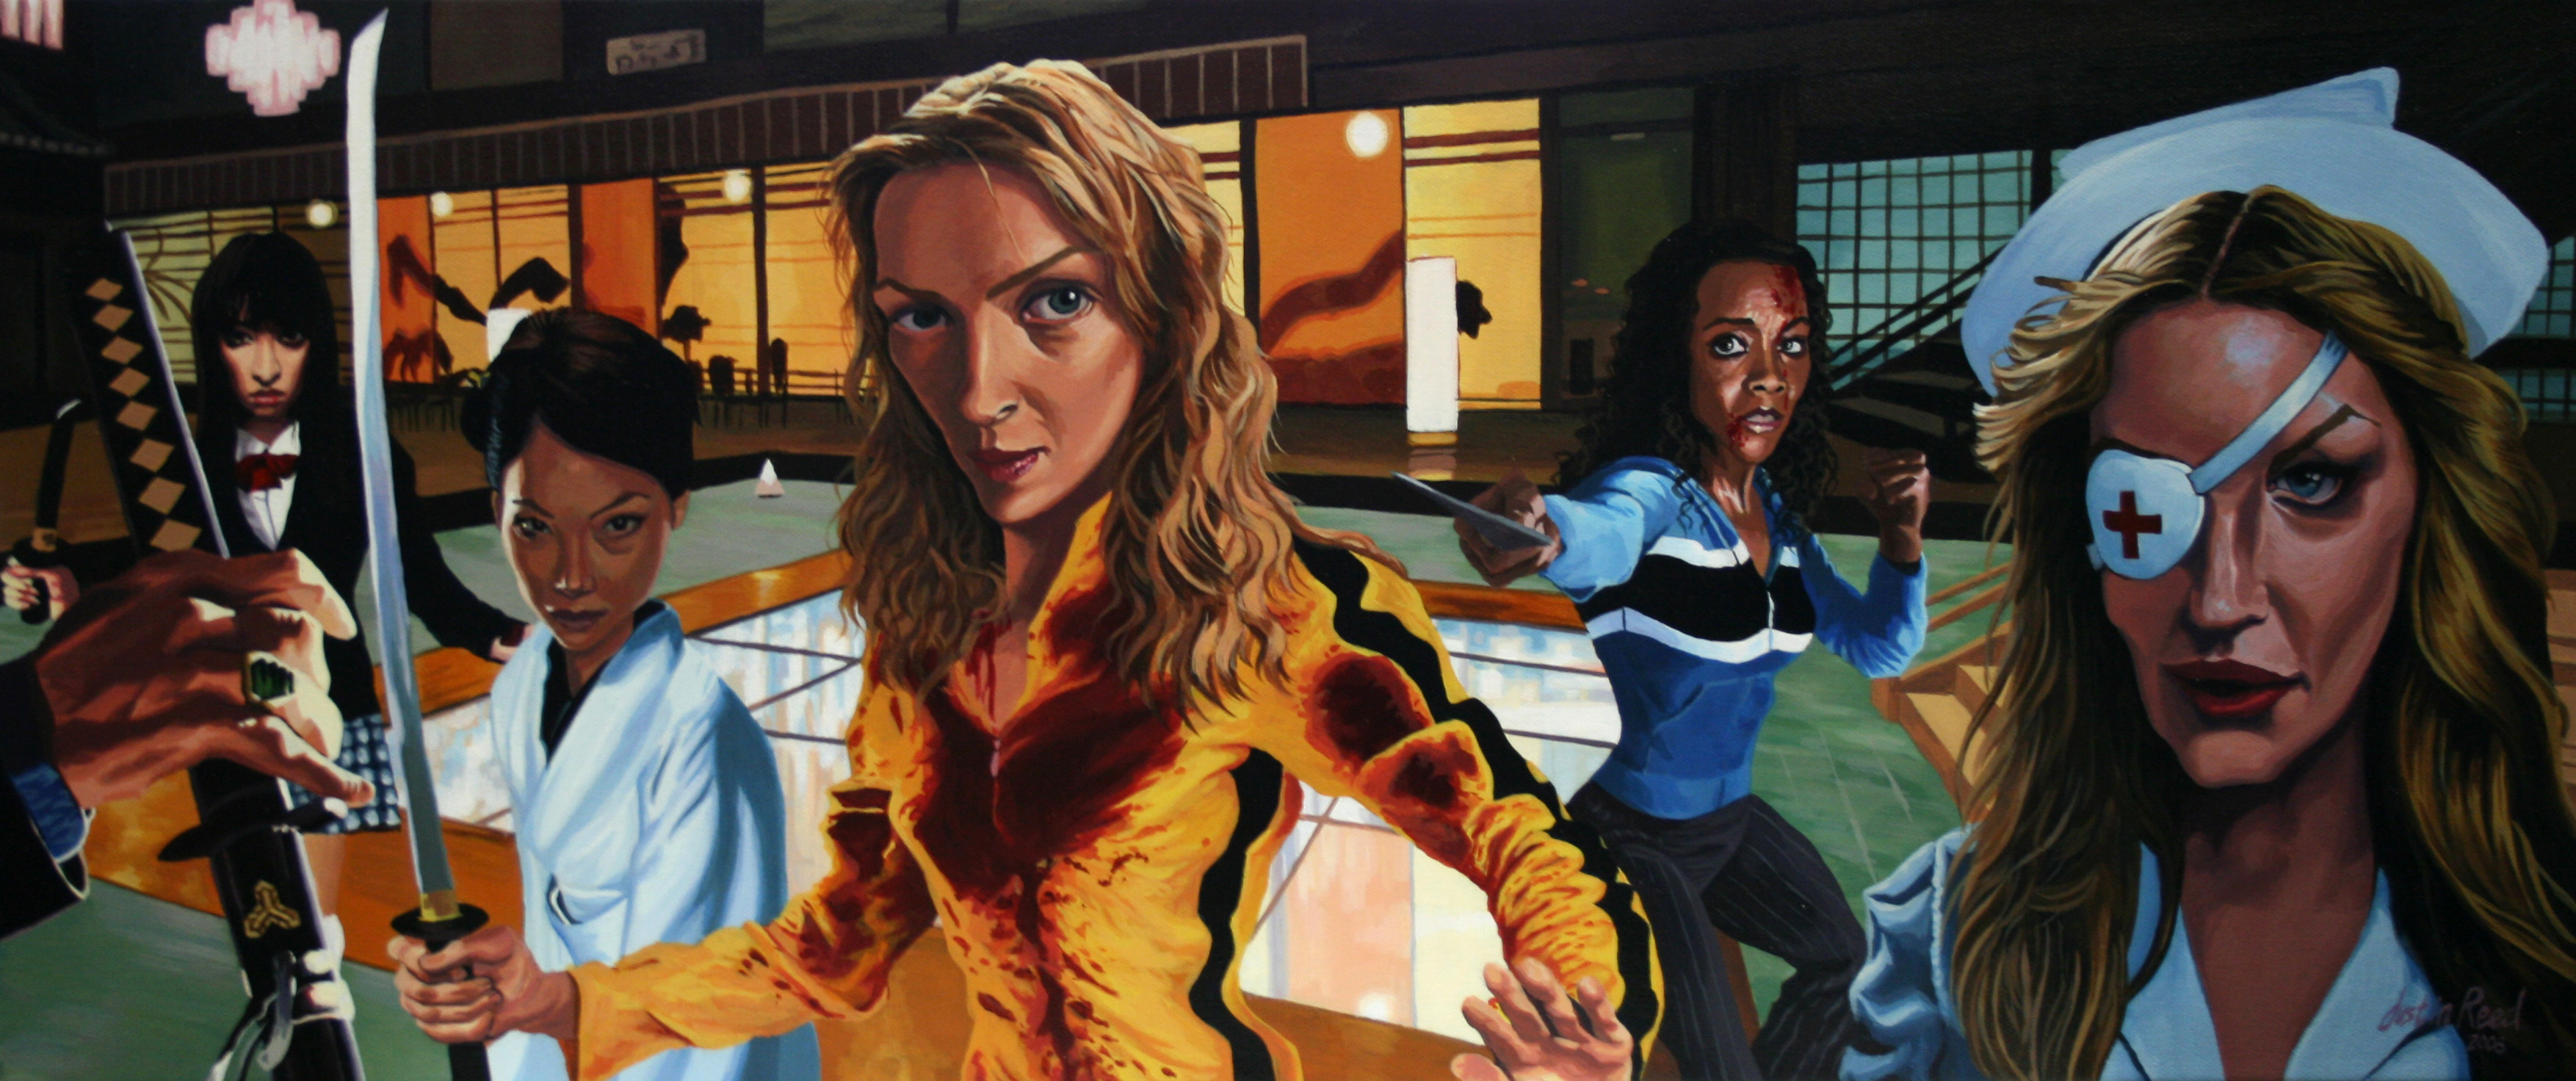 Kill bill justin reed foundmyself for El mural pelicula